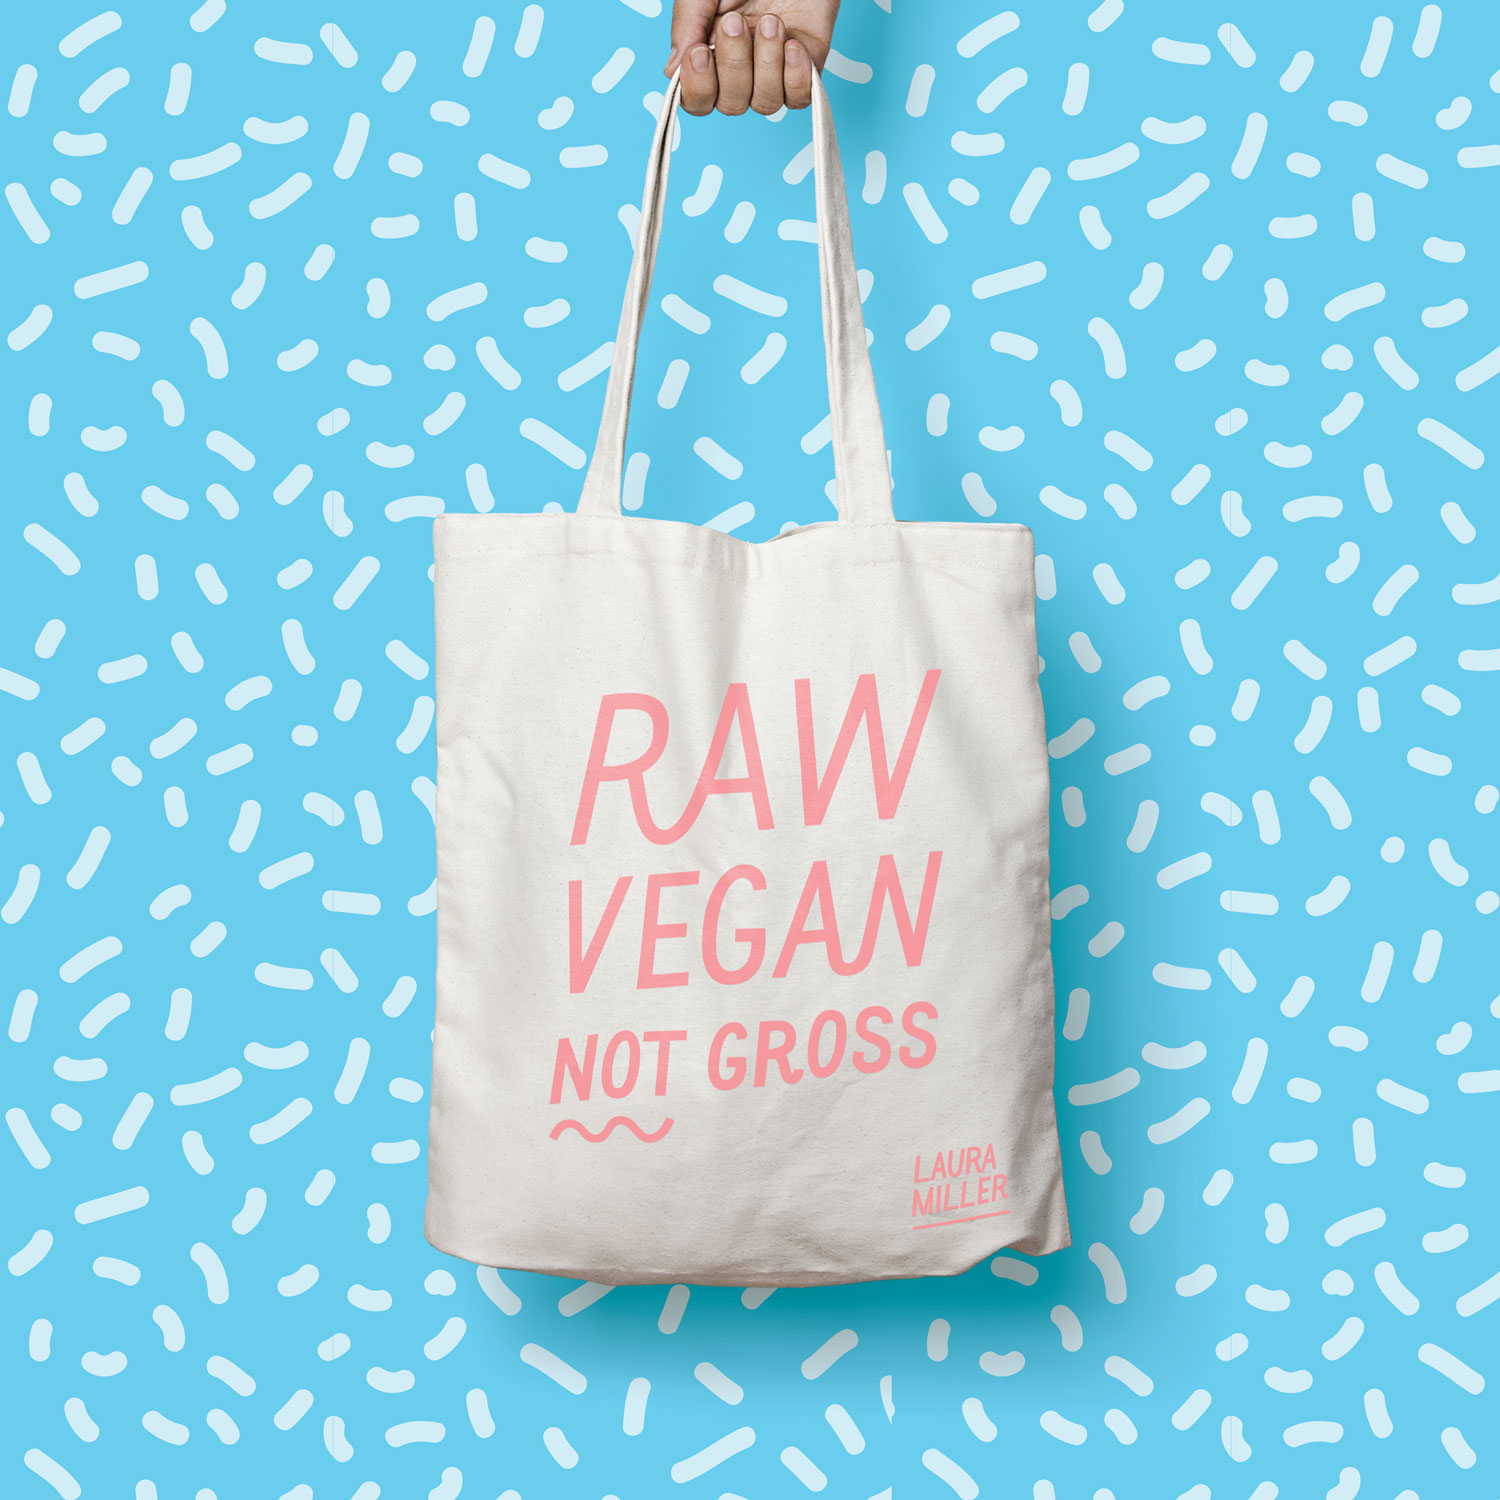 laura-miller-design-leo-basica-design-raw-vegan-not-gross